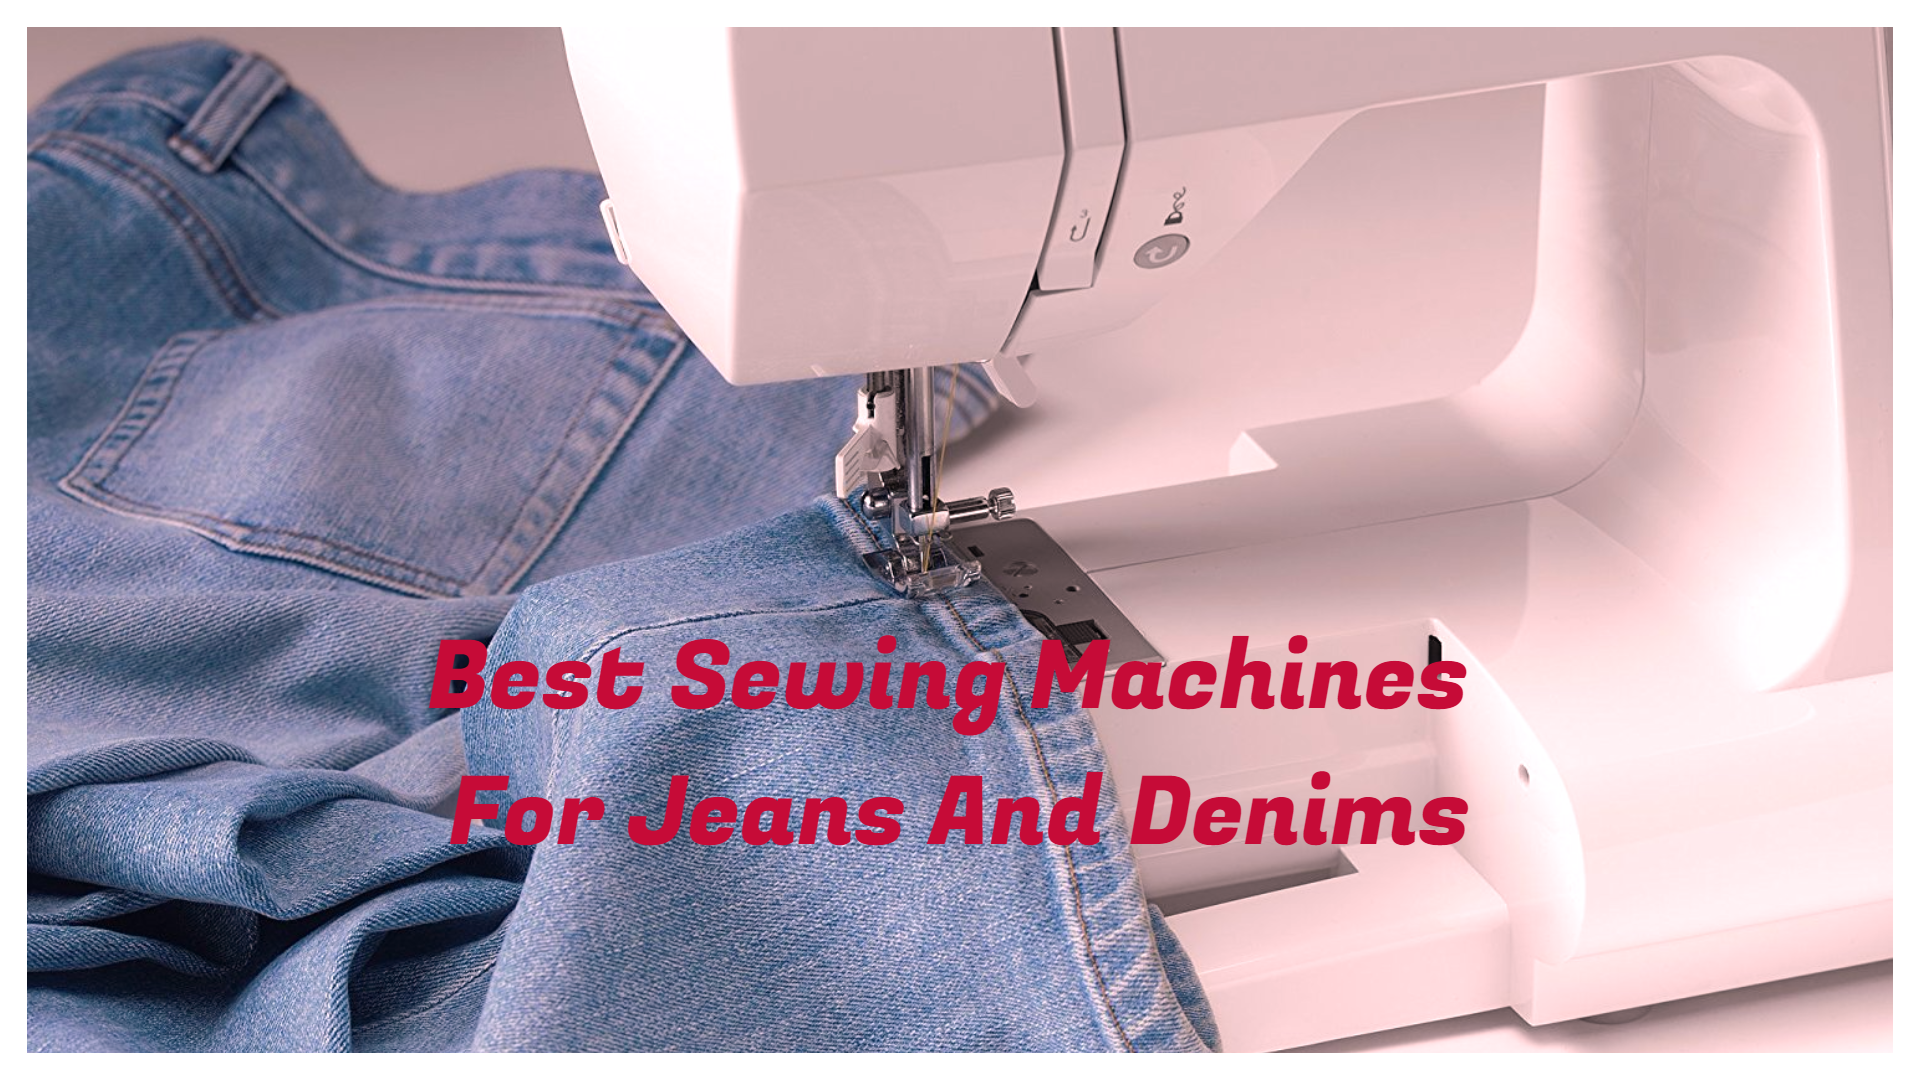 Most Important Thing Is Proper Sewing Machine And Needles Which Can Sew Through Thicker Materials Such As Denim